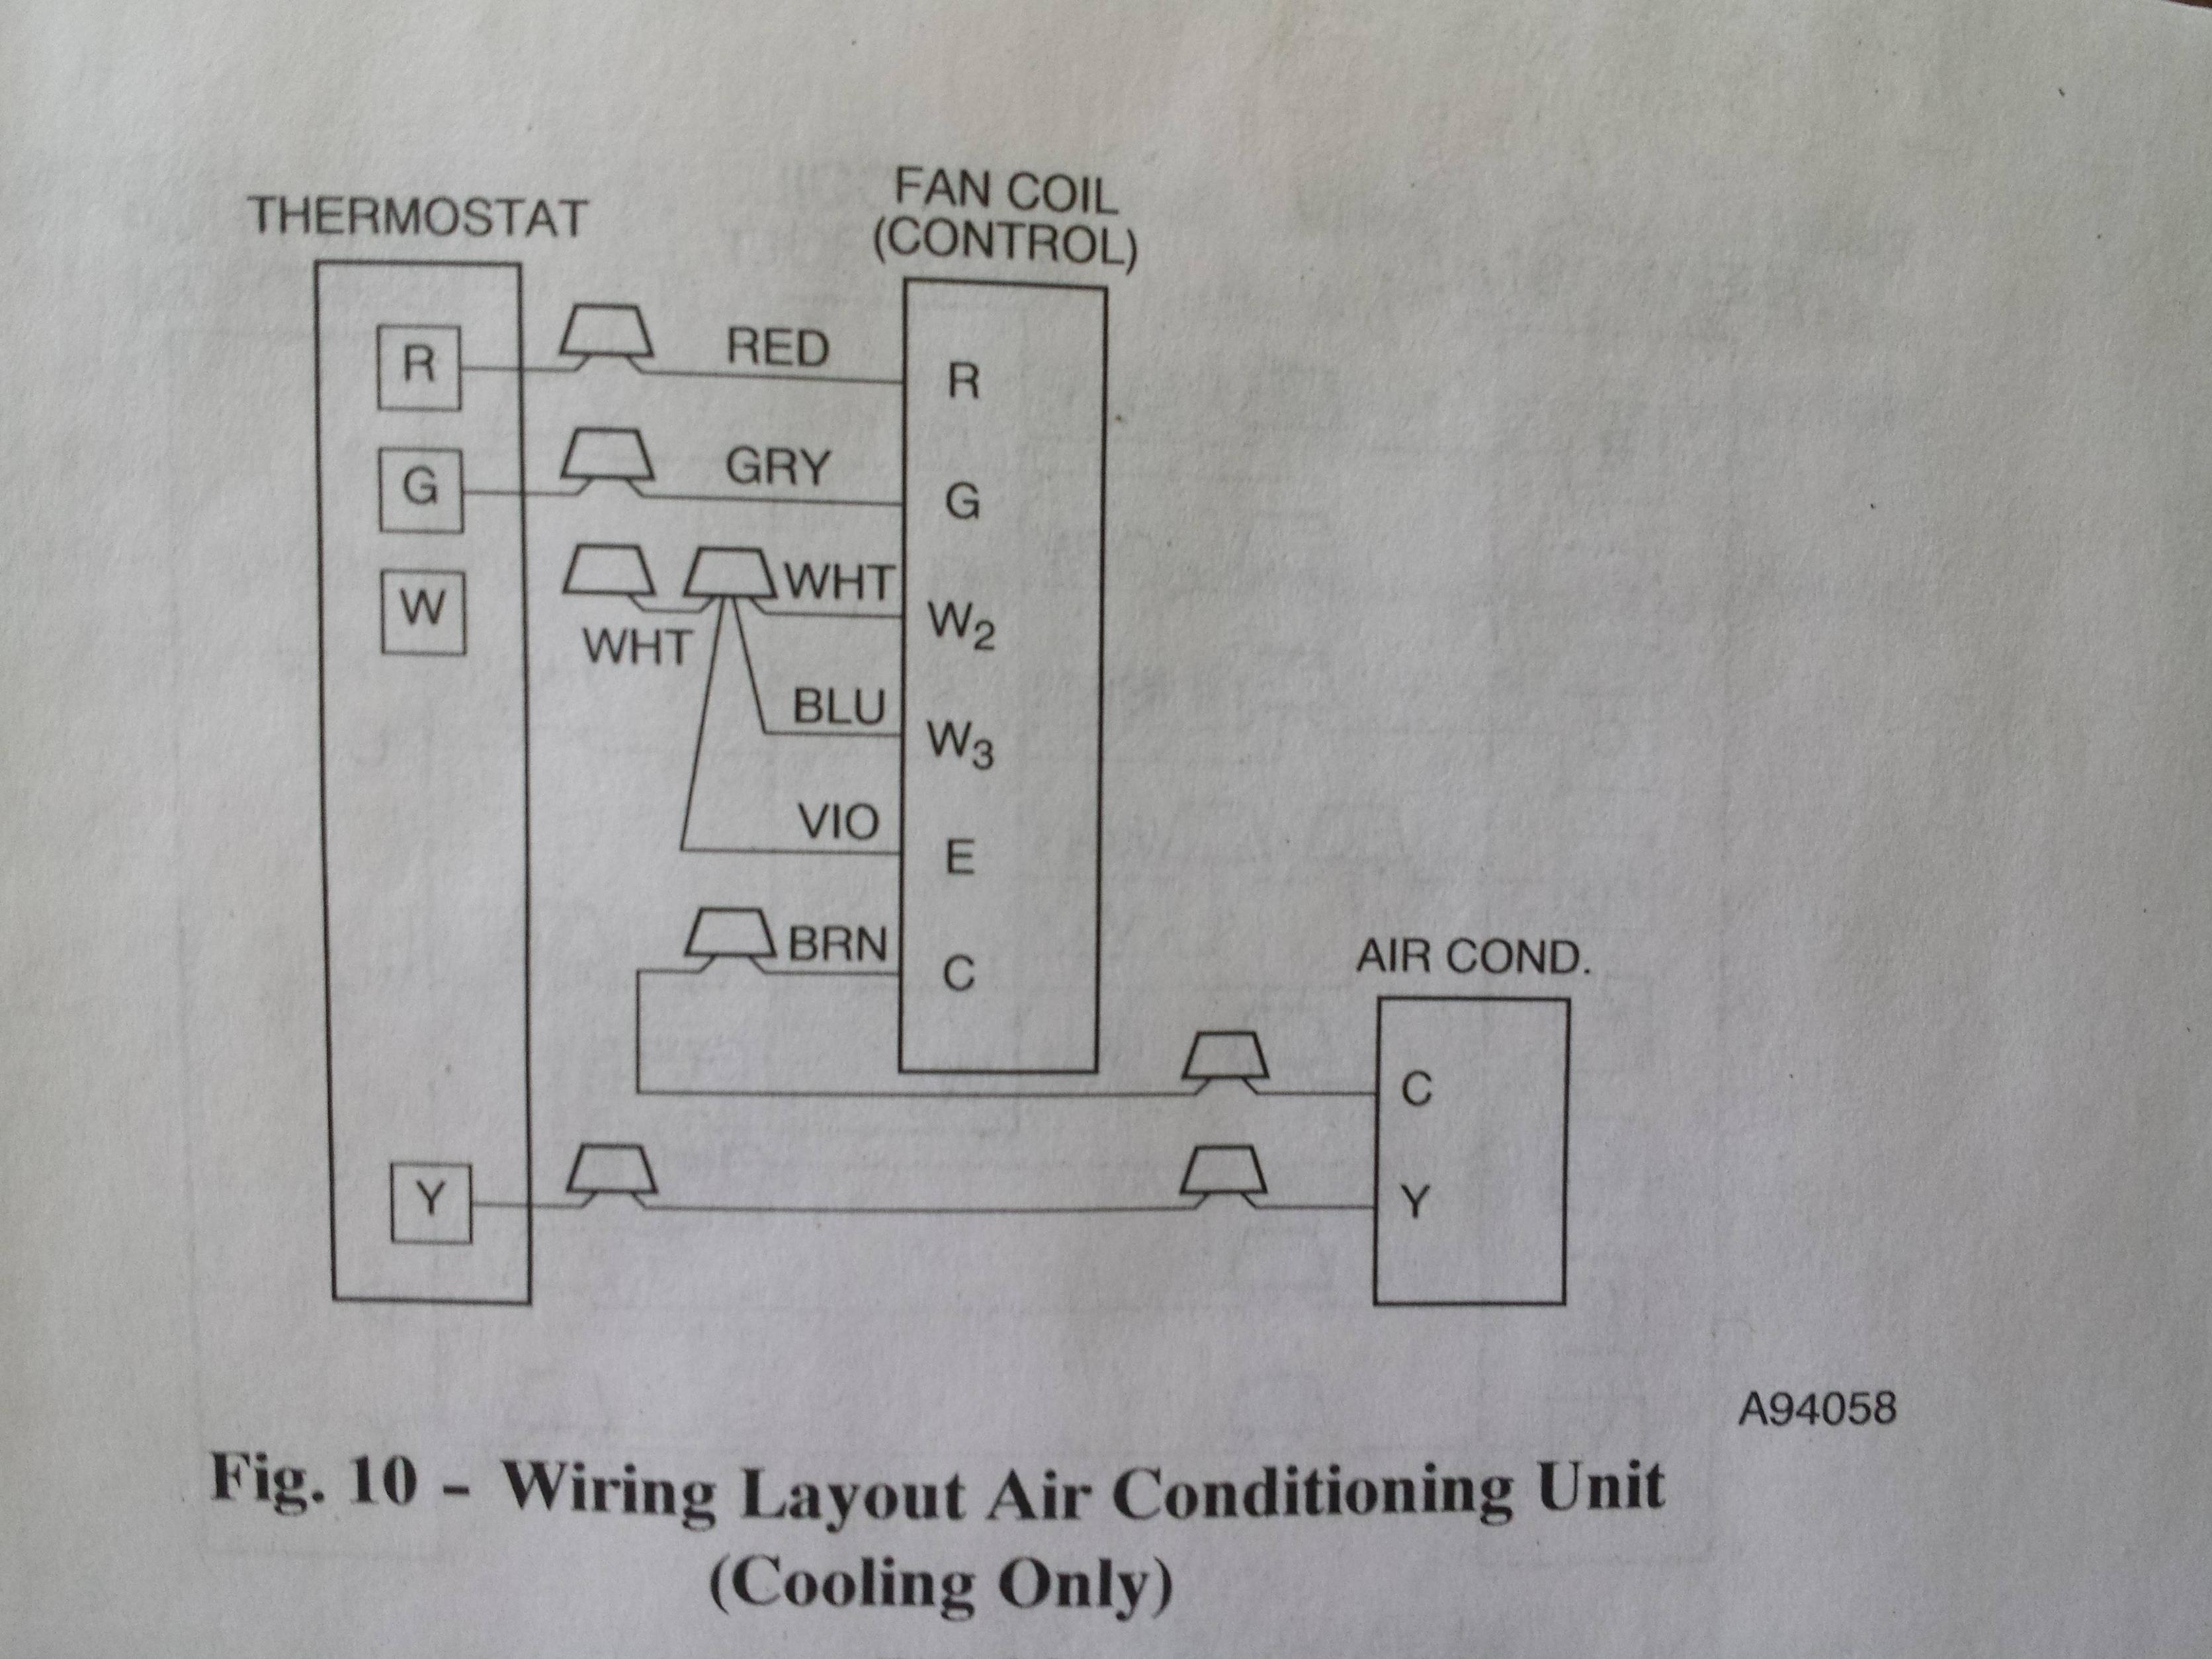 Thermostat Wiring No Labels